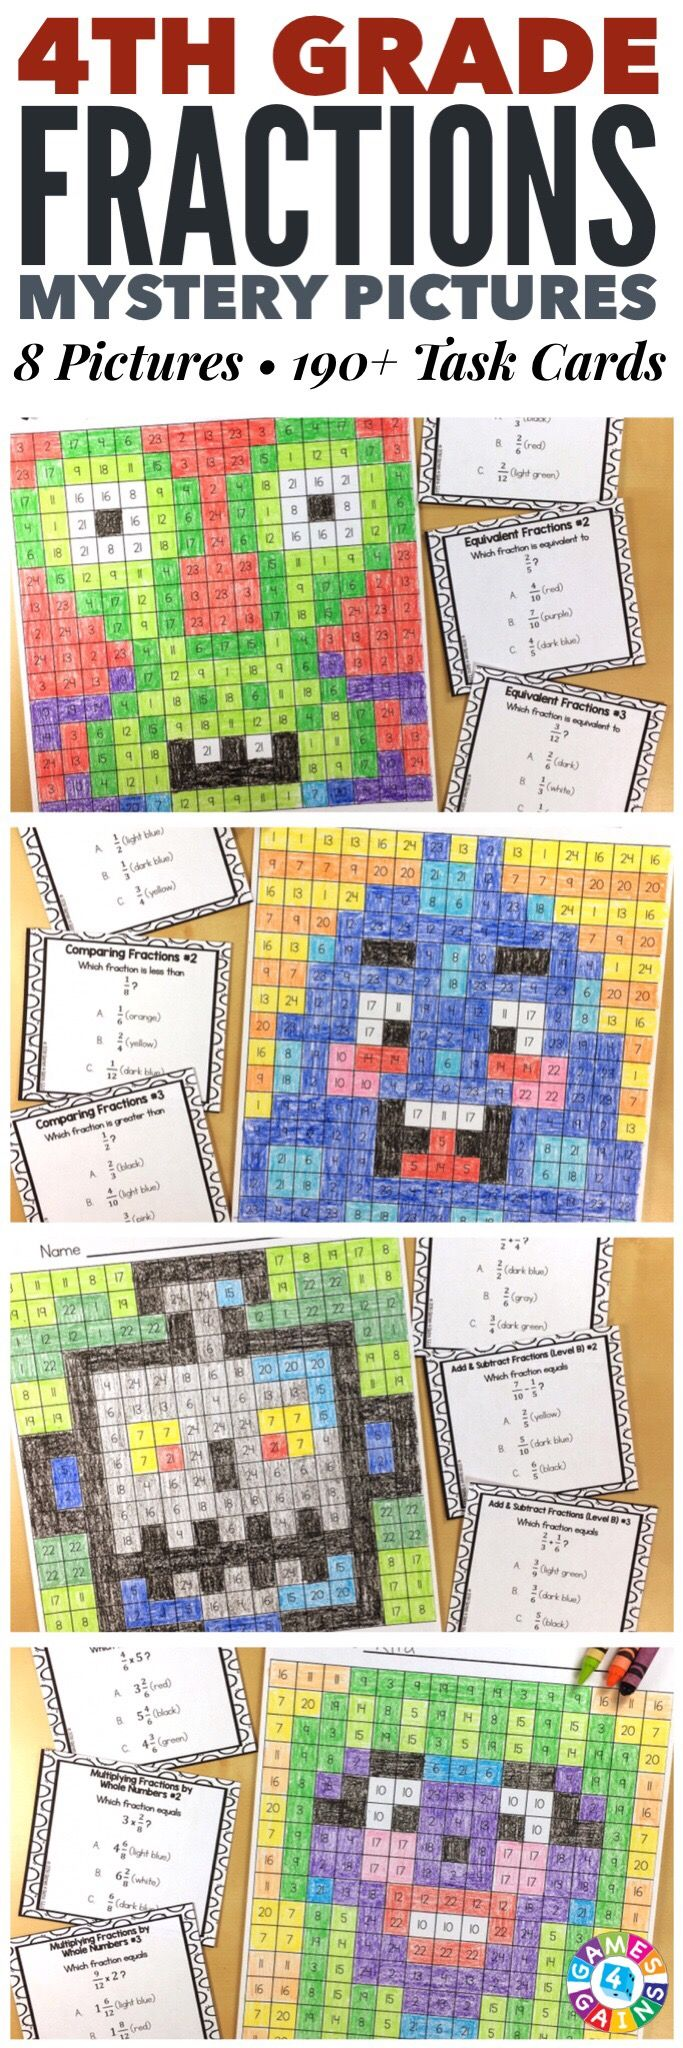 """""""I LOVE these mystery pictures for reinforcing concepts!"""" These 4th Grade Fractions Mystery Pictures are perfect for practicing key 4th grade Common Core fractions standards. This set includes 8 different pictures and over 190 task cards covering equivalent fractions, comparing fractions, adding fractions, subtracting fractions, converting mixed numbers and improper fractions, multiplying fractions by whole numbers, and converting fractions to decimals!"""